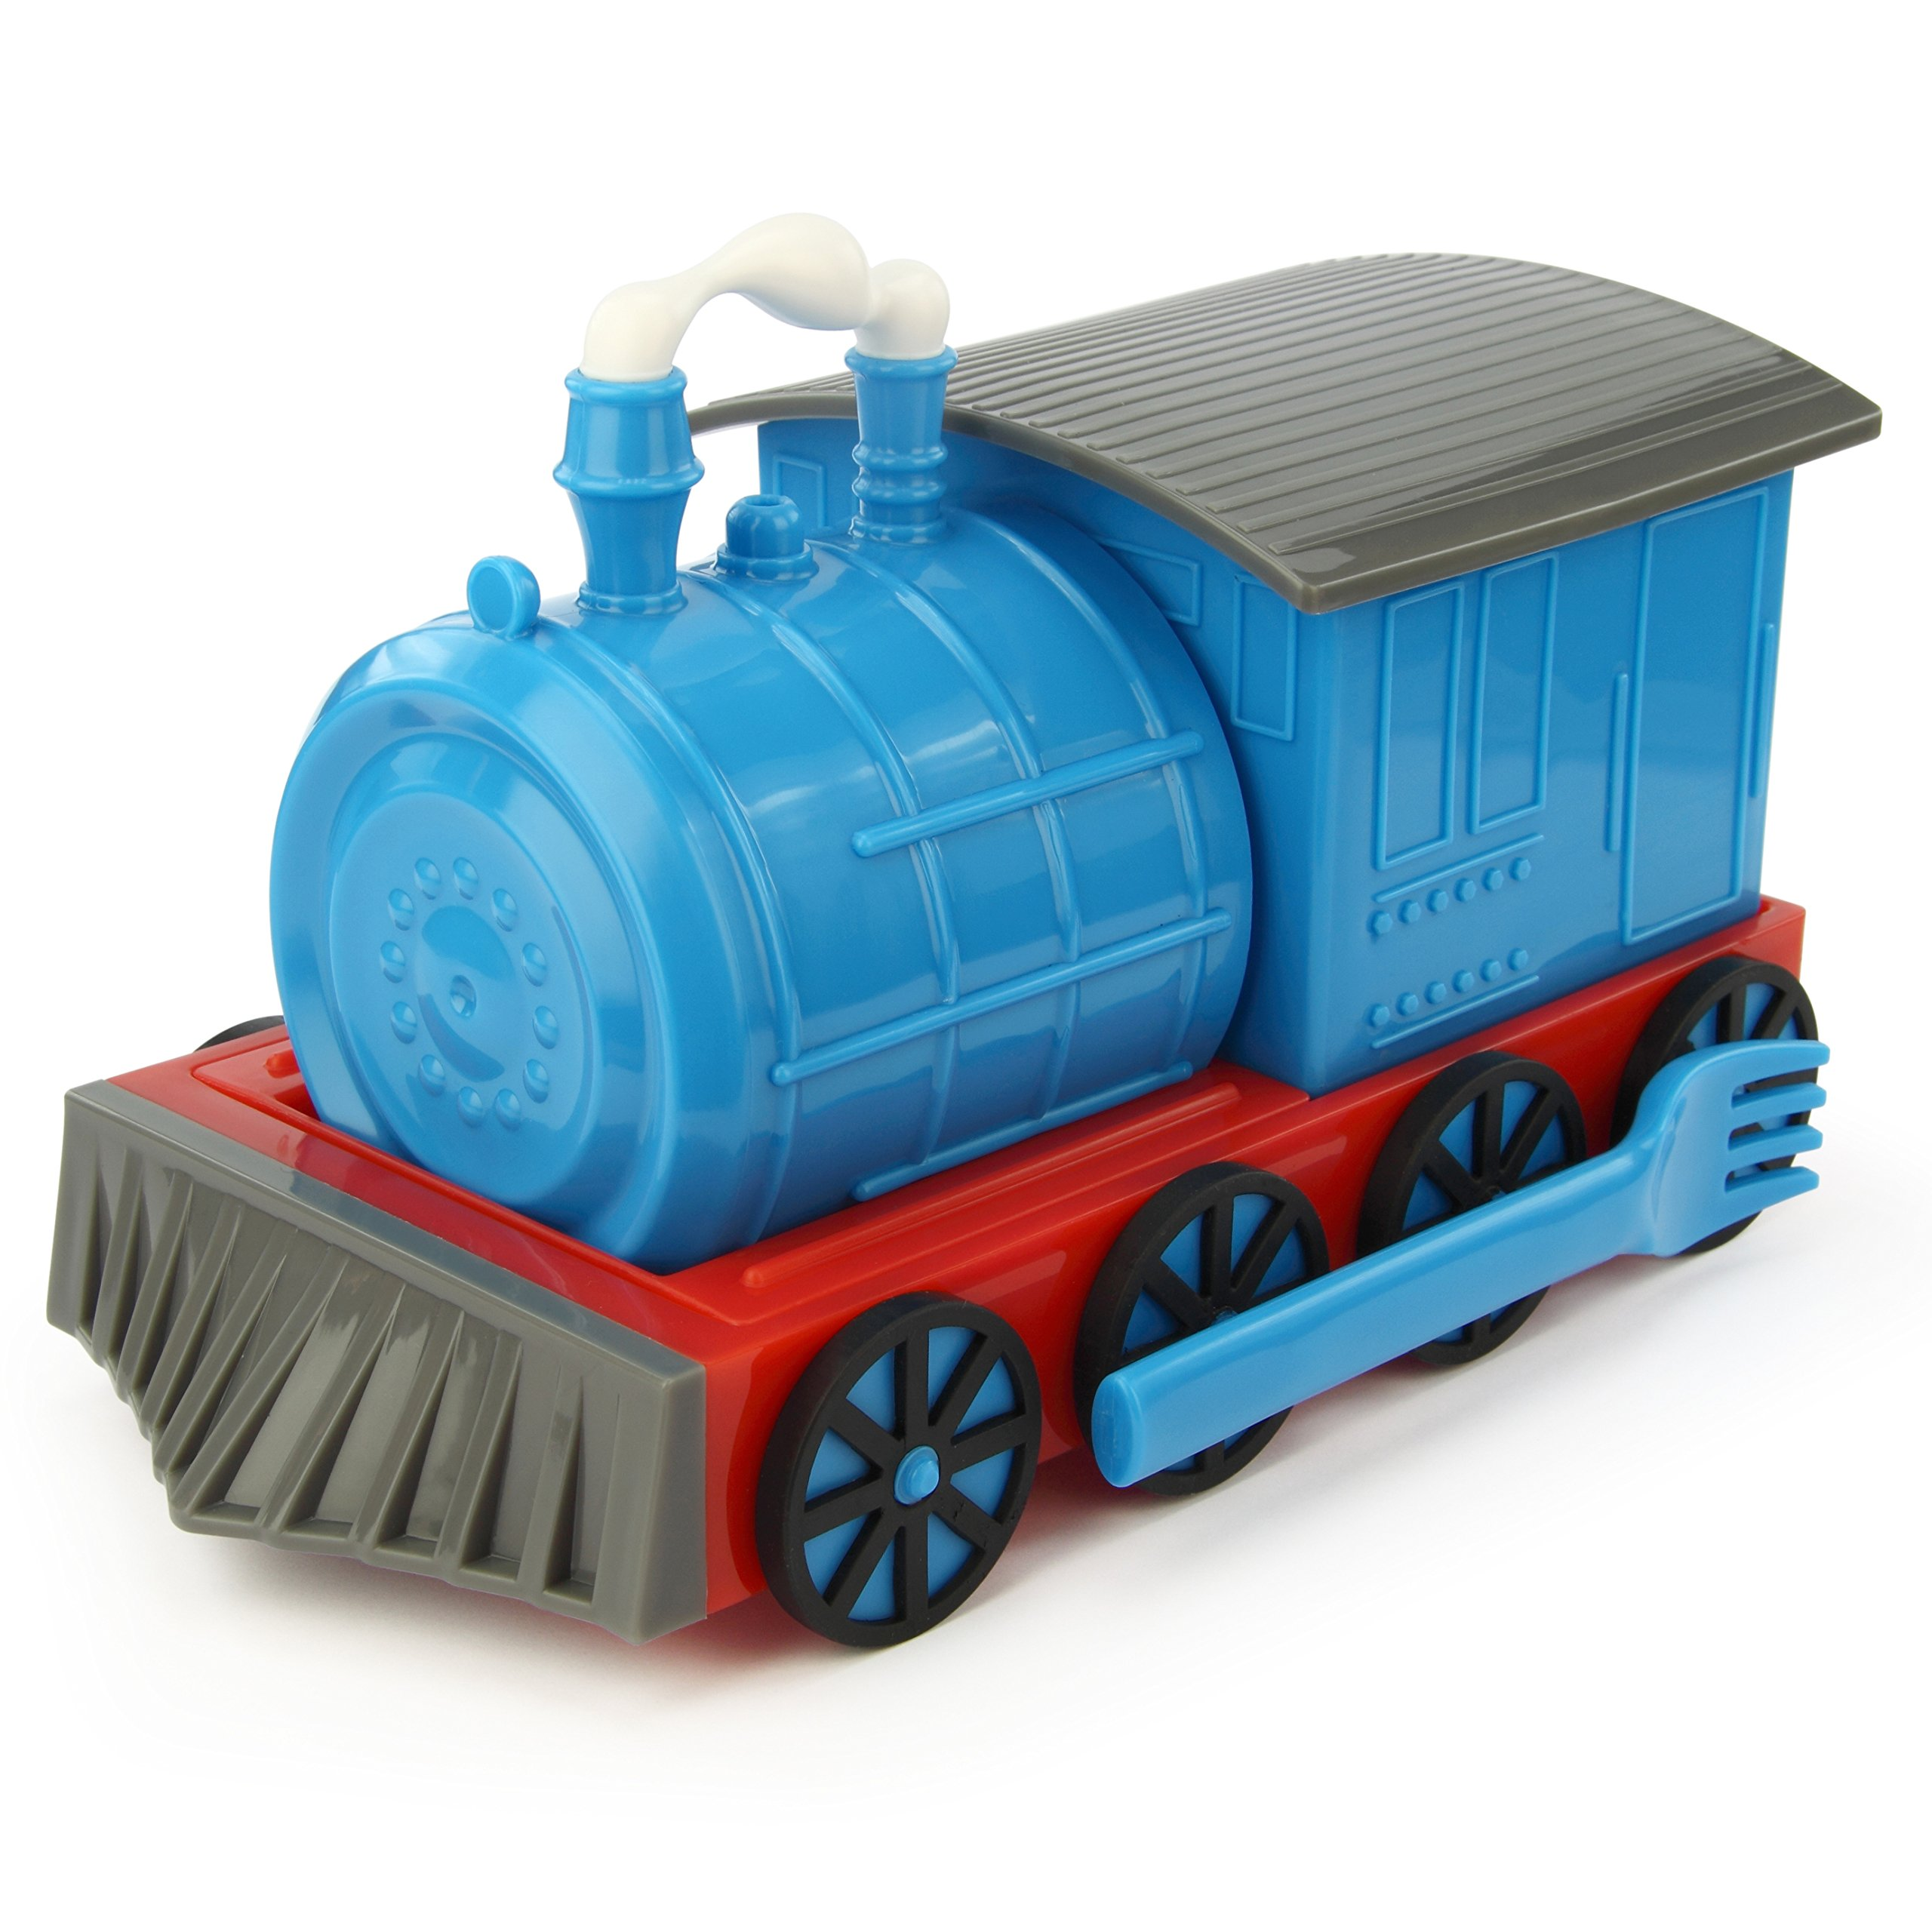 KidsFunwares Chew-Chew Train Place Setting, Blue - Transforms from a Train into a Functional Meal Set - Includes Bowl, Small Plate, Plate, Fork, Spoon, and Cup - Great Gift for Kids - Dishwasher Safe